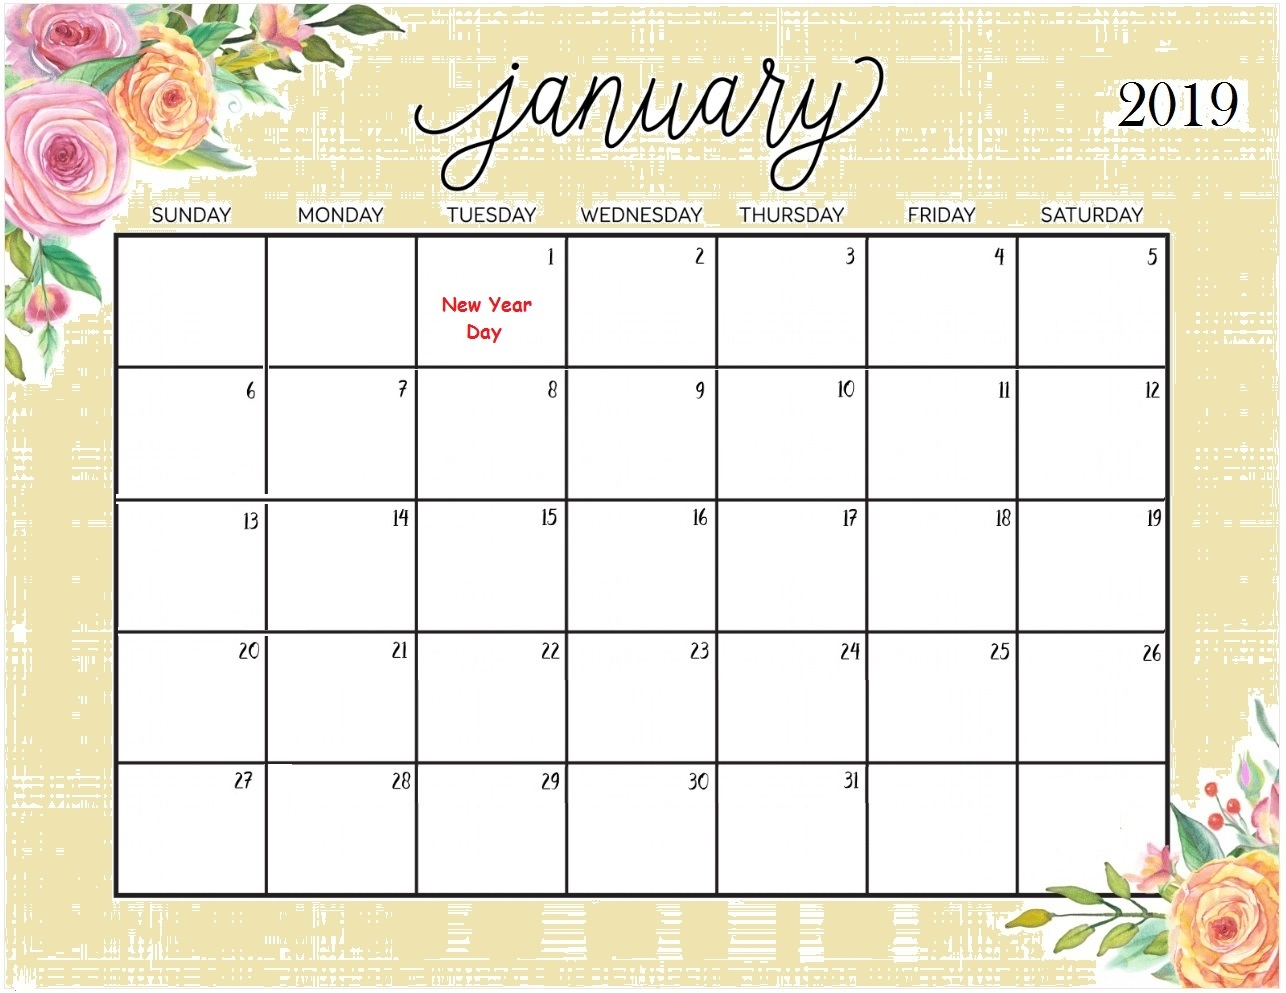 picture pictures printable template calendar 2018::January 2019 Calendar Printable Template USA UK Canada